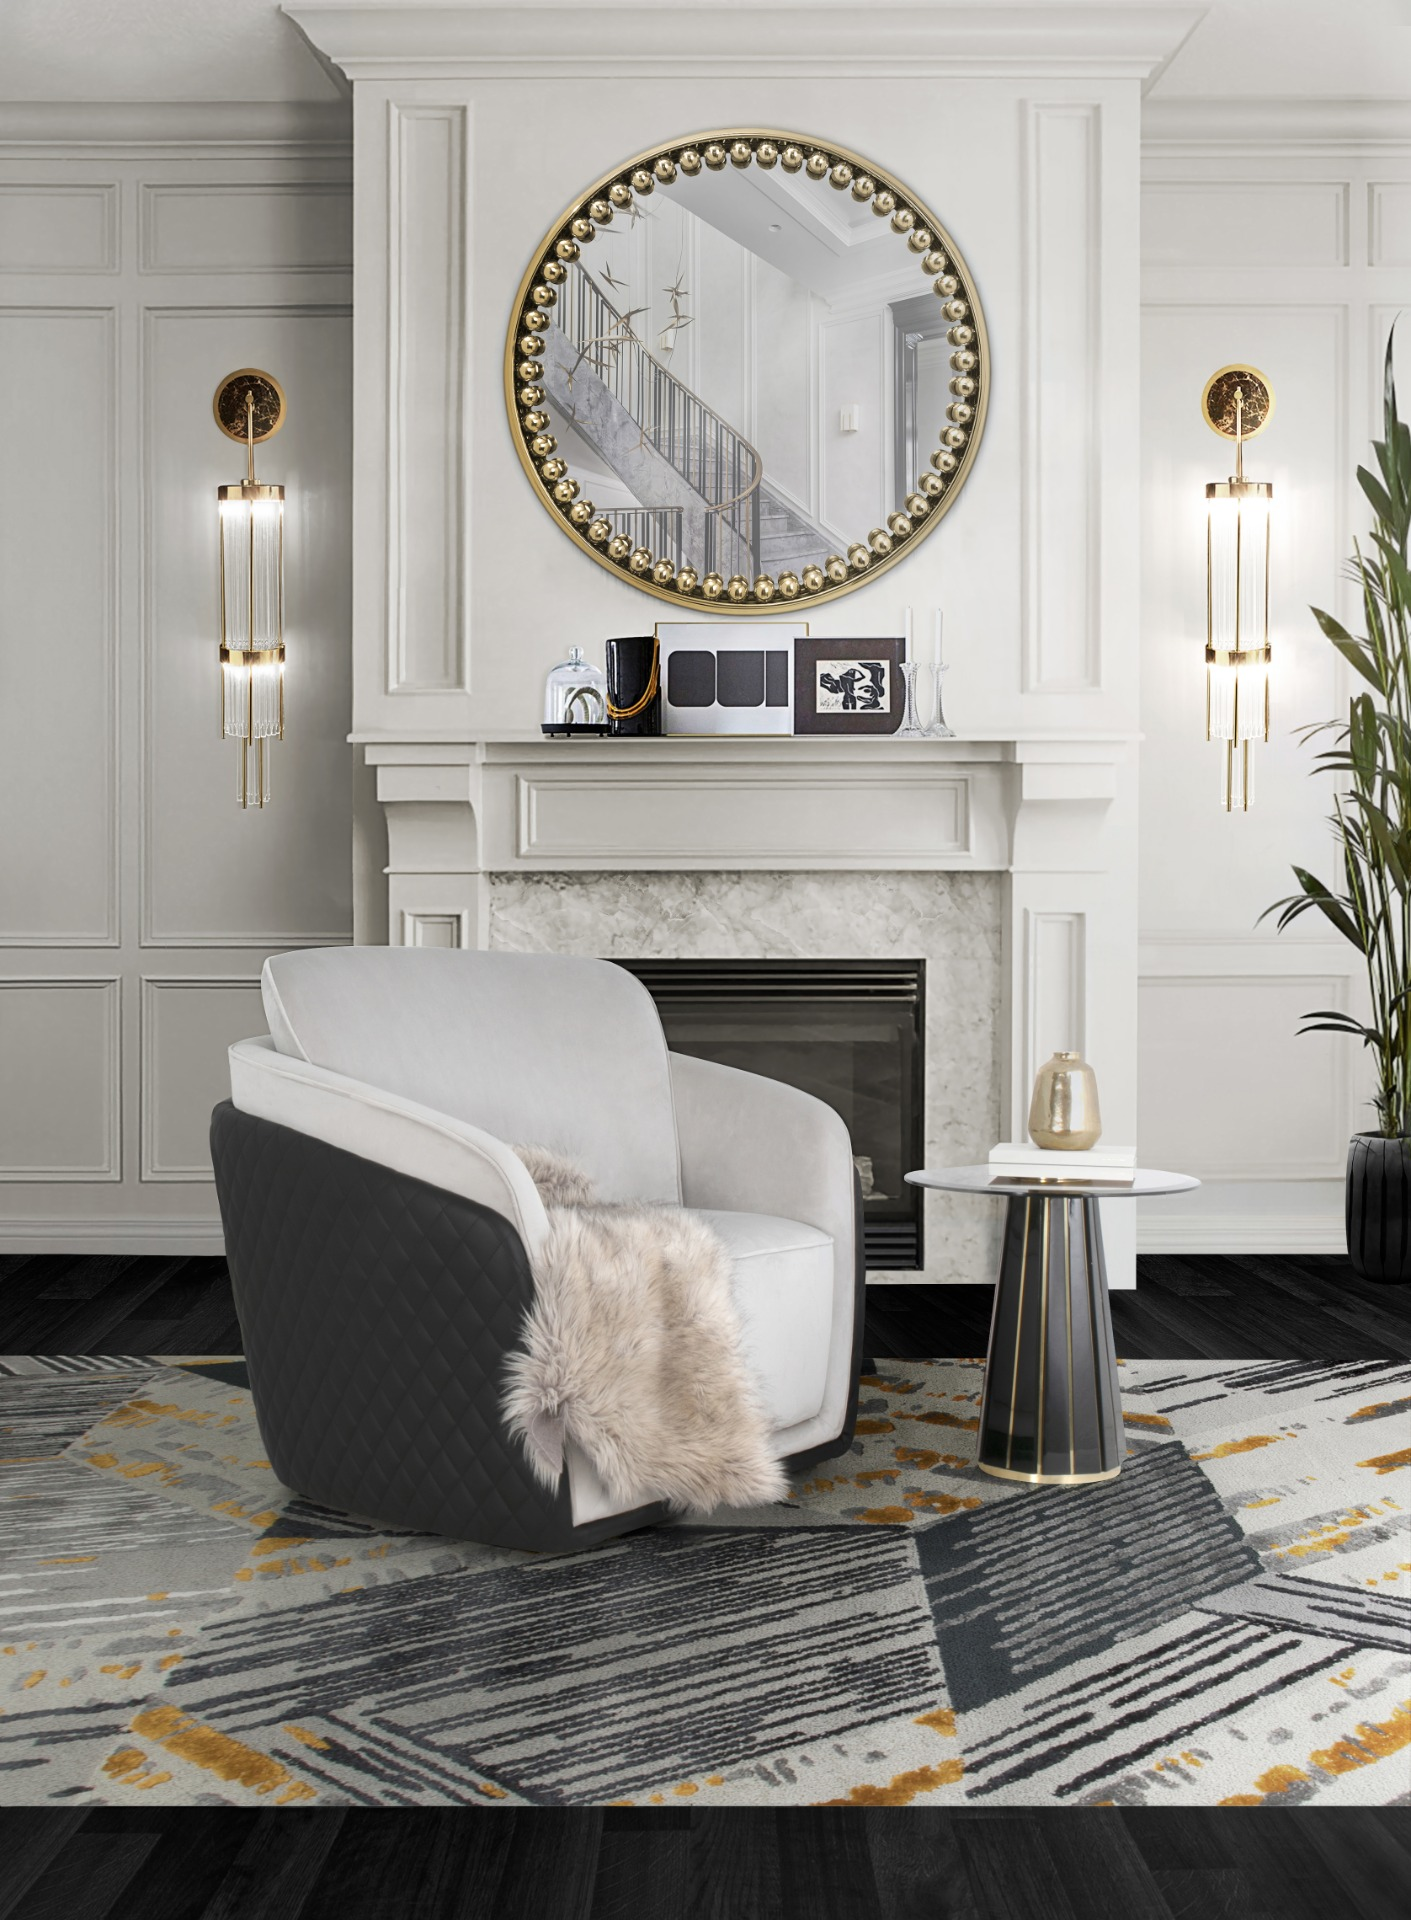 Classic Style: The Timeless Design